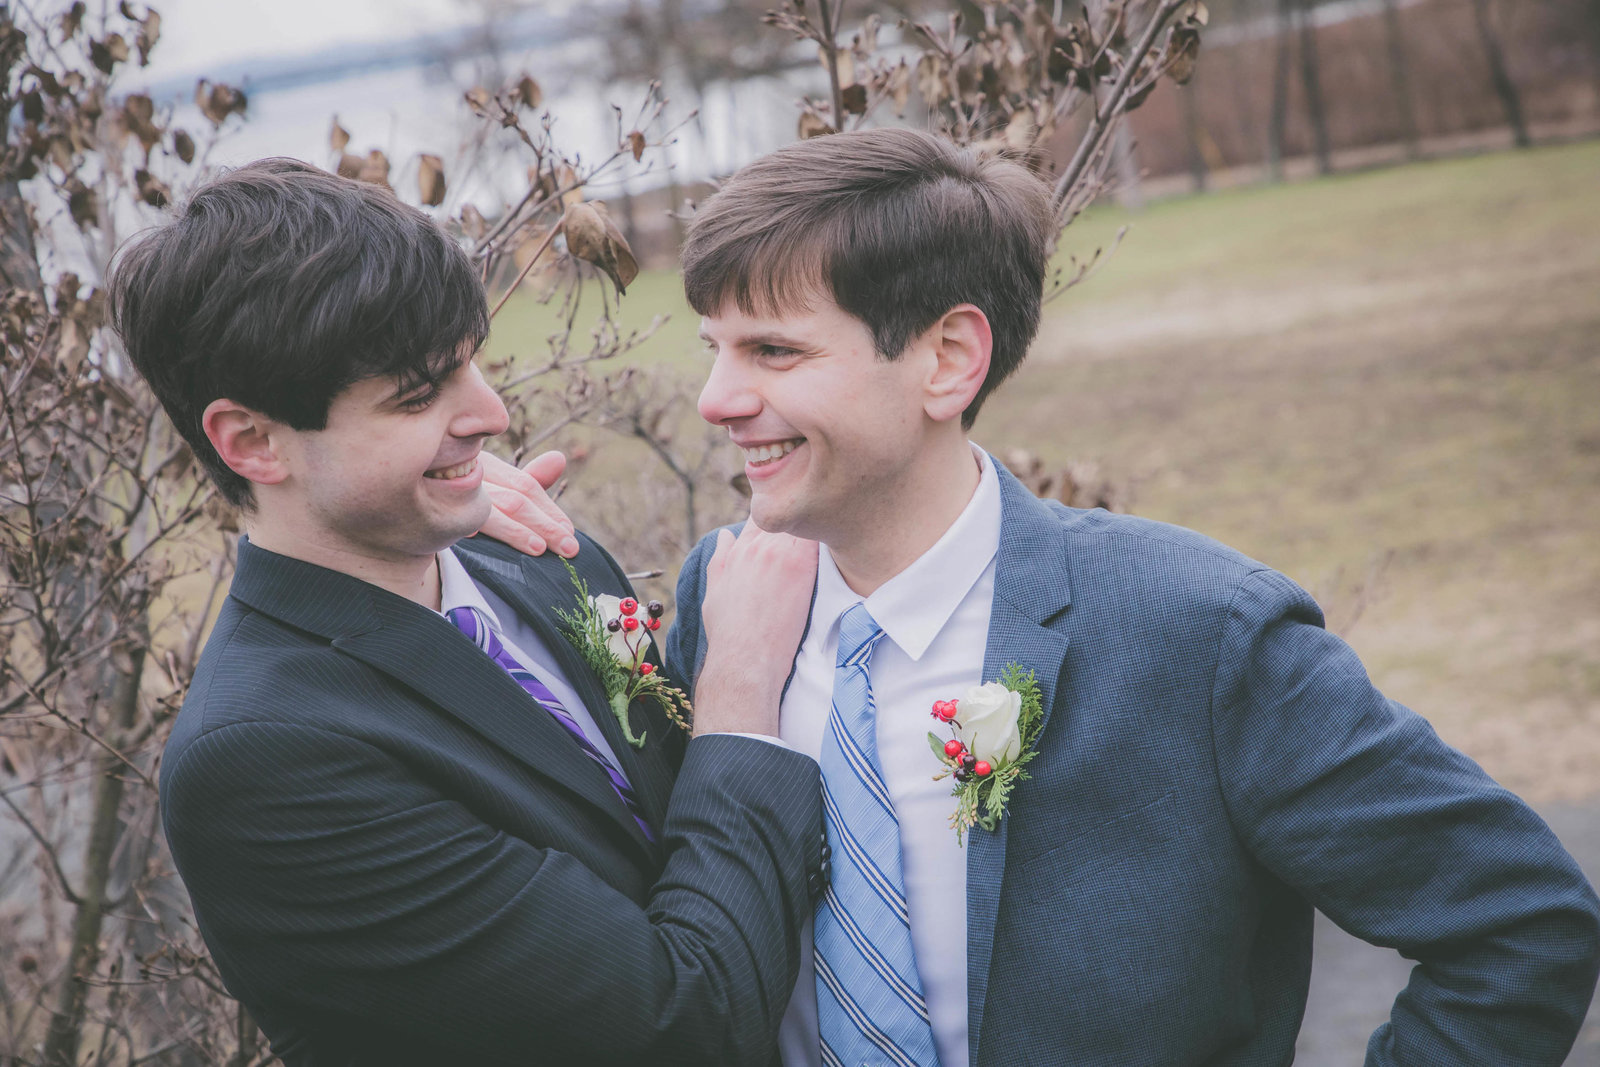 Grooms look at each other and smile in park.